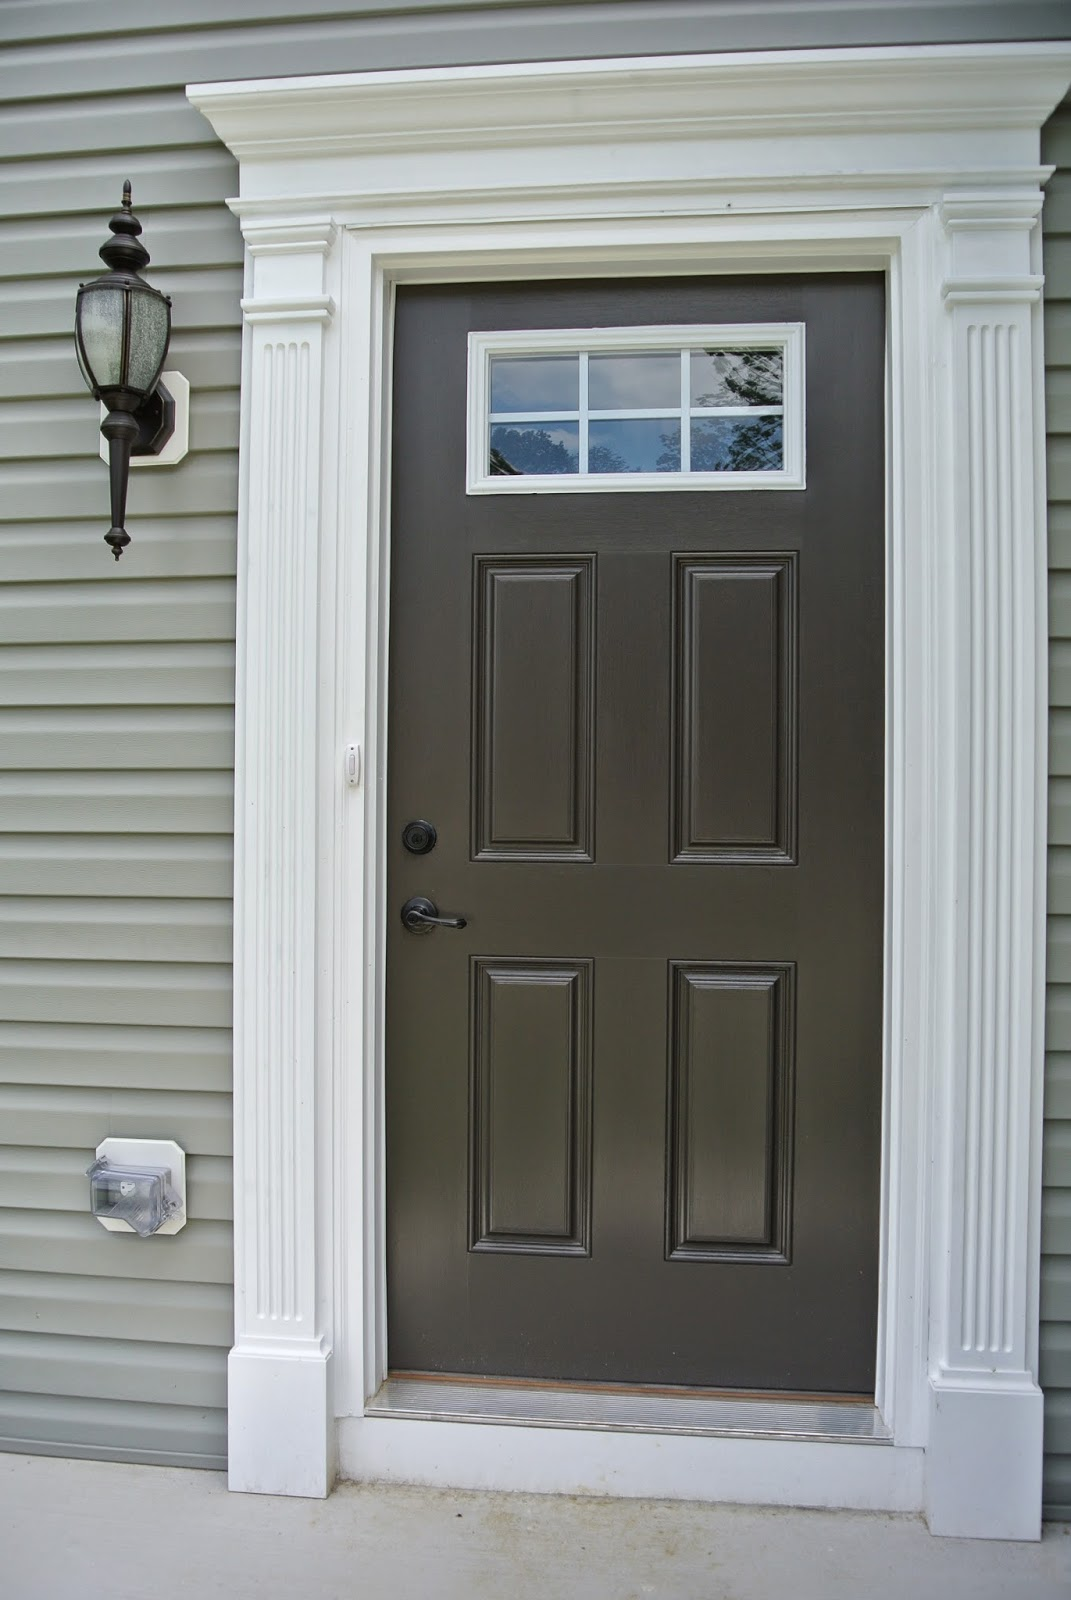 A picture of the painted front door.